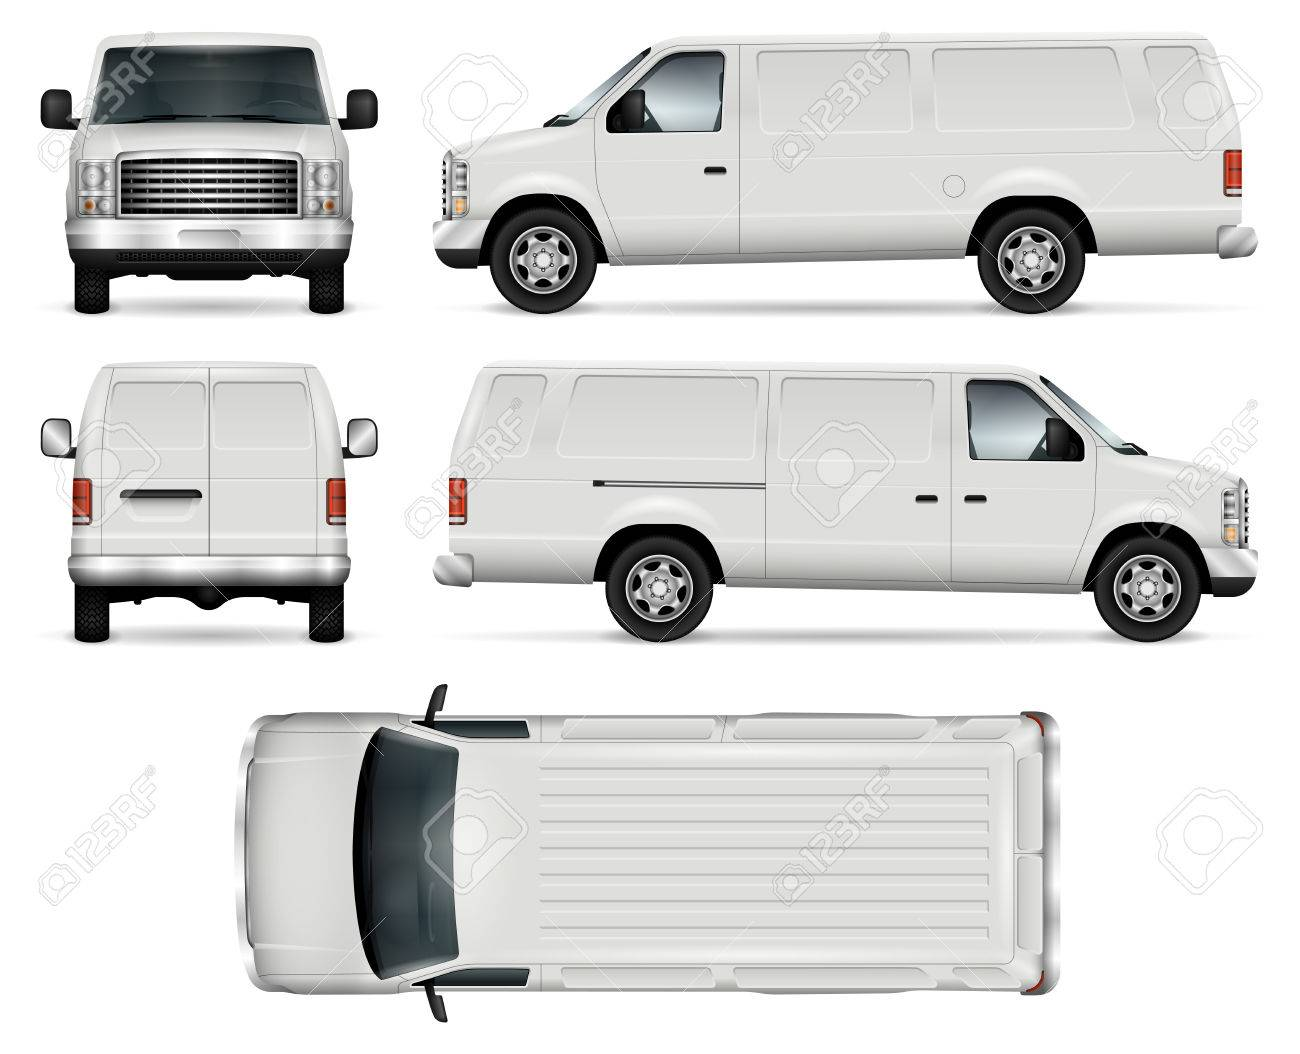 6c8003b298 Panel van vector template for car branding and advertising. Isolated truck  on white background.